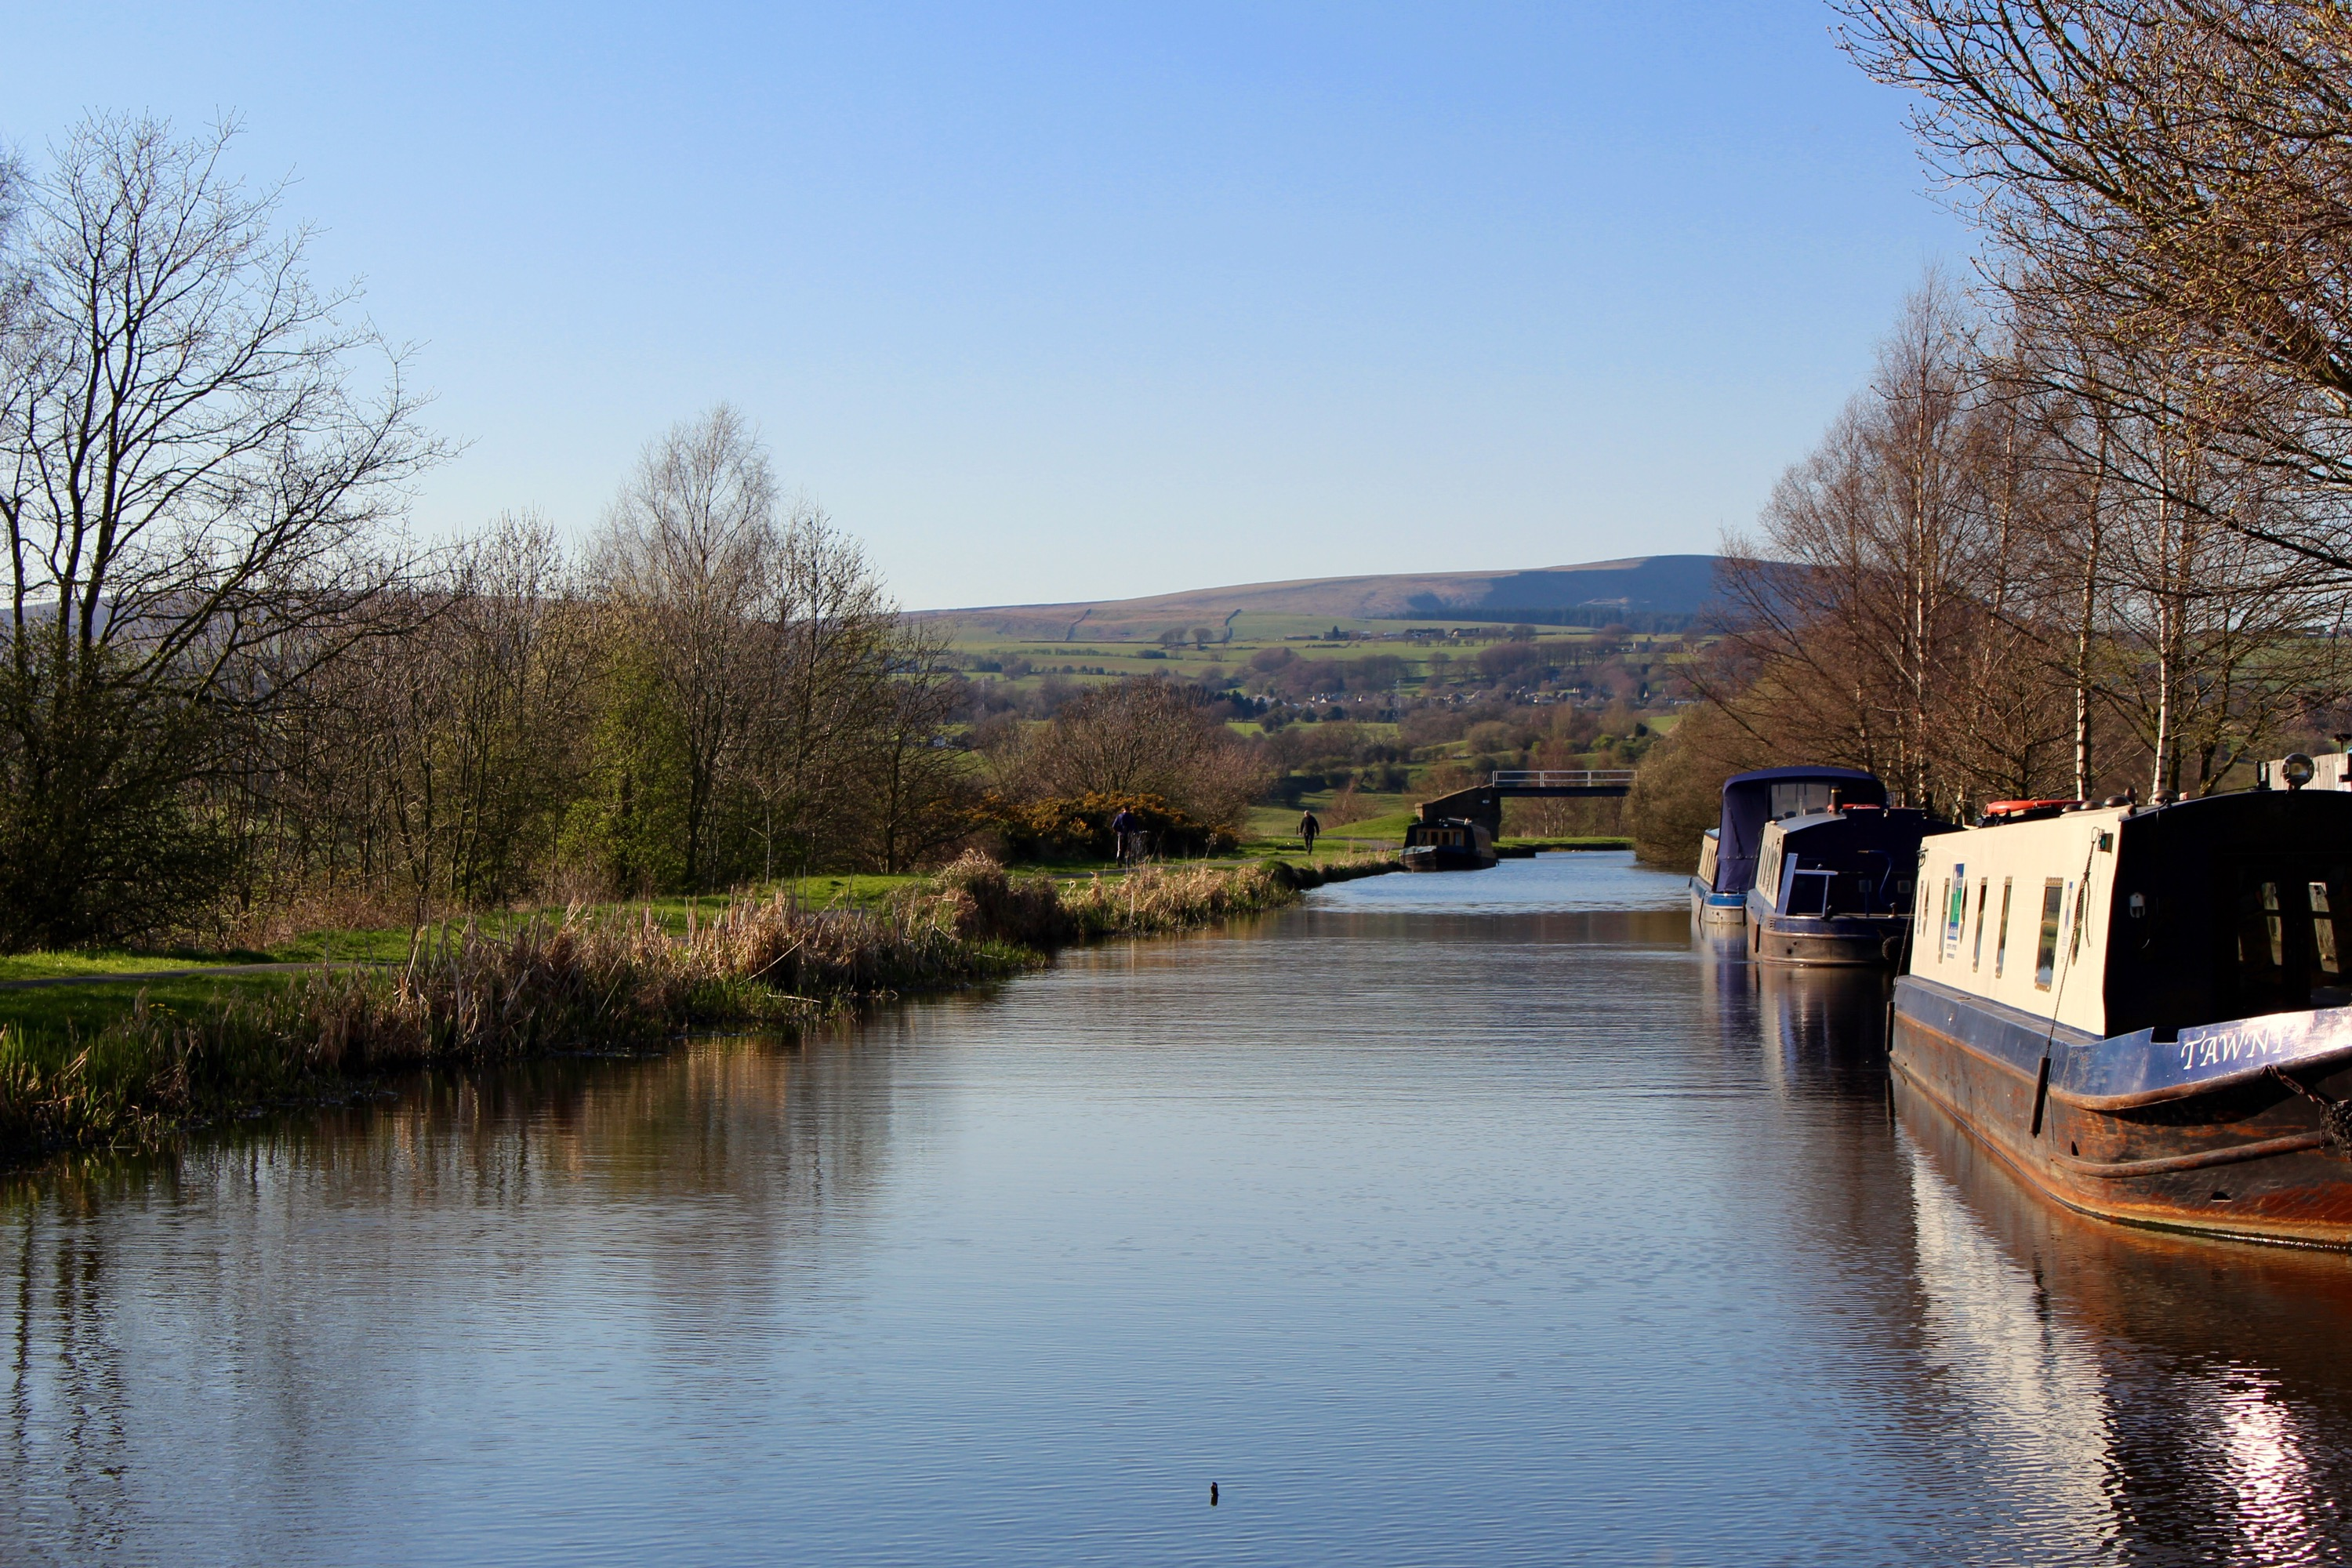 Pendle Hill over the canal